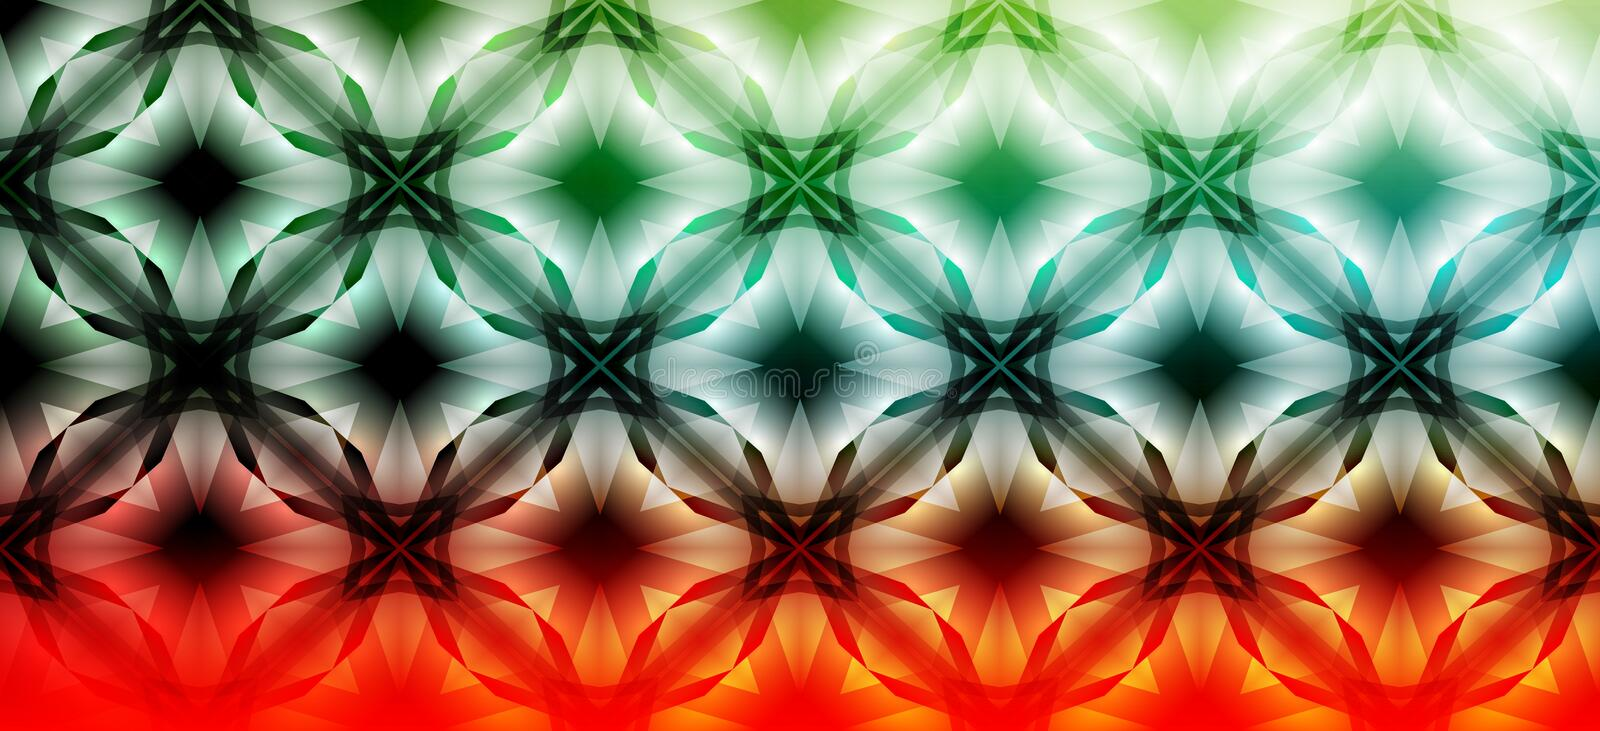 Green and red abstract pattern background vector design stock abbildung